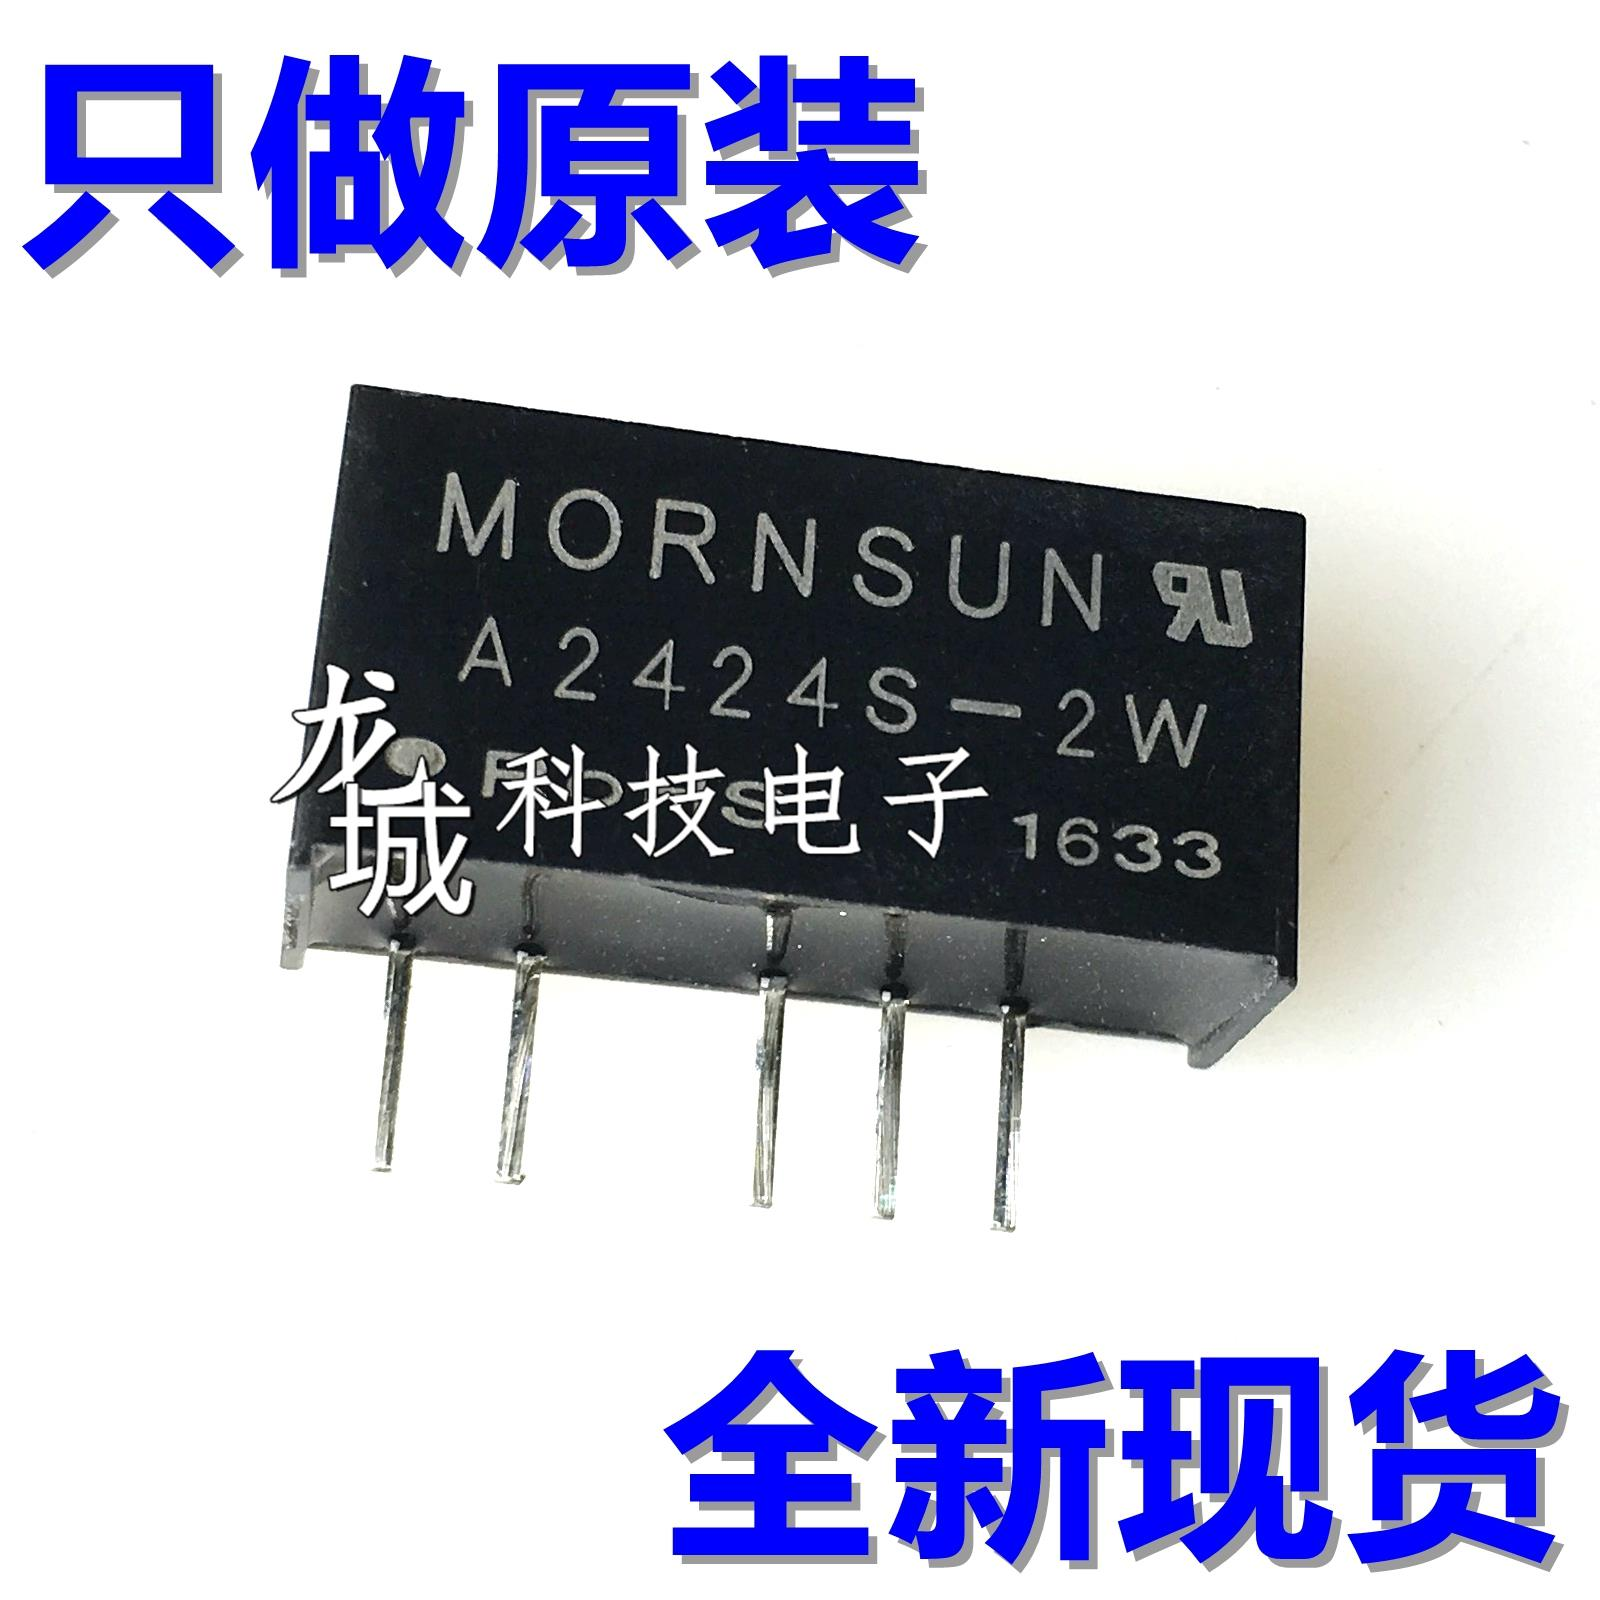 3pcs Lot B0505s 1w Dc Power Module 5v Turn Isolate The 1000pcs Lm358 Sop8 Integrated Circuit Operational Amplifier Ic Isolated A2424s 2w Dual Output Input 24v Positive And